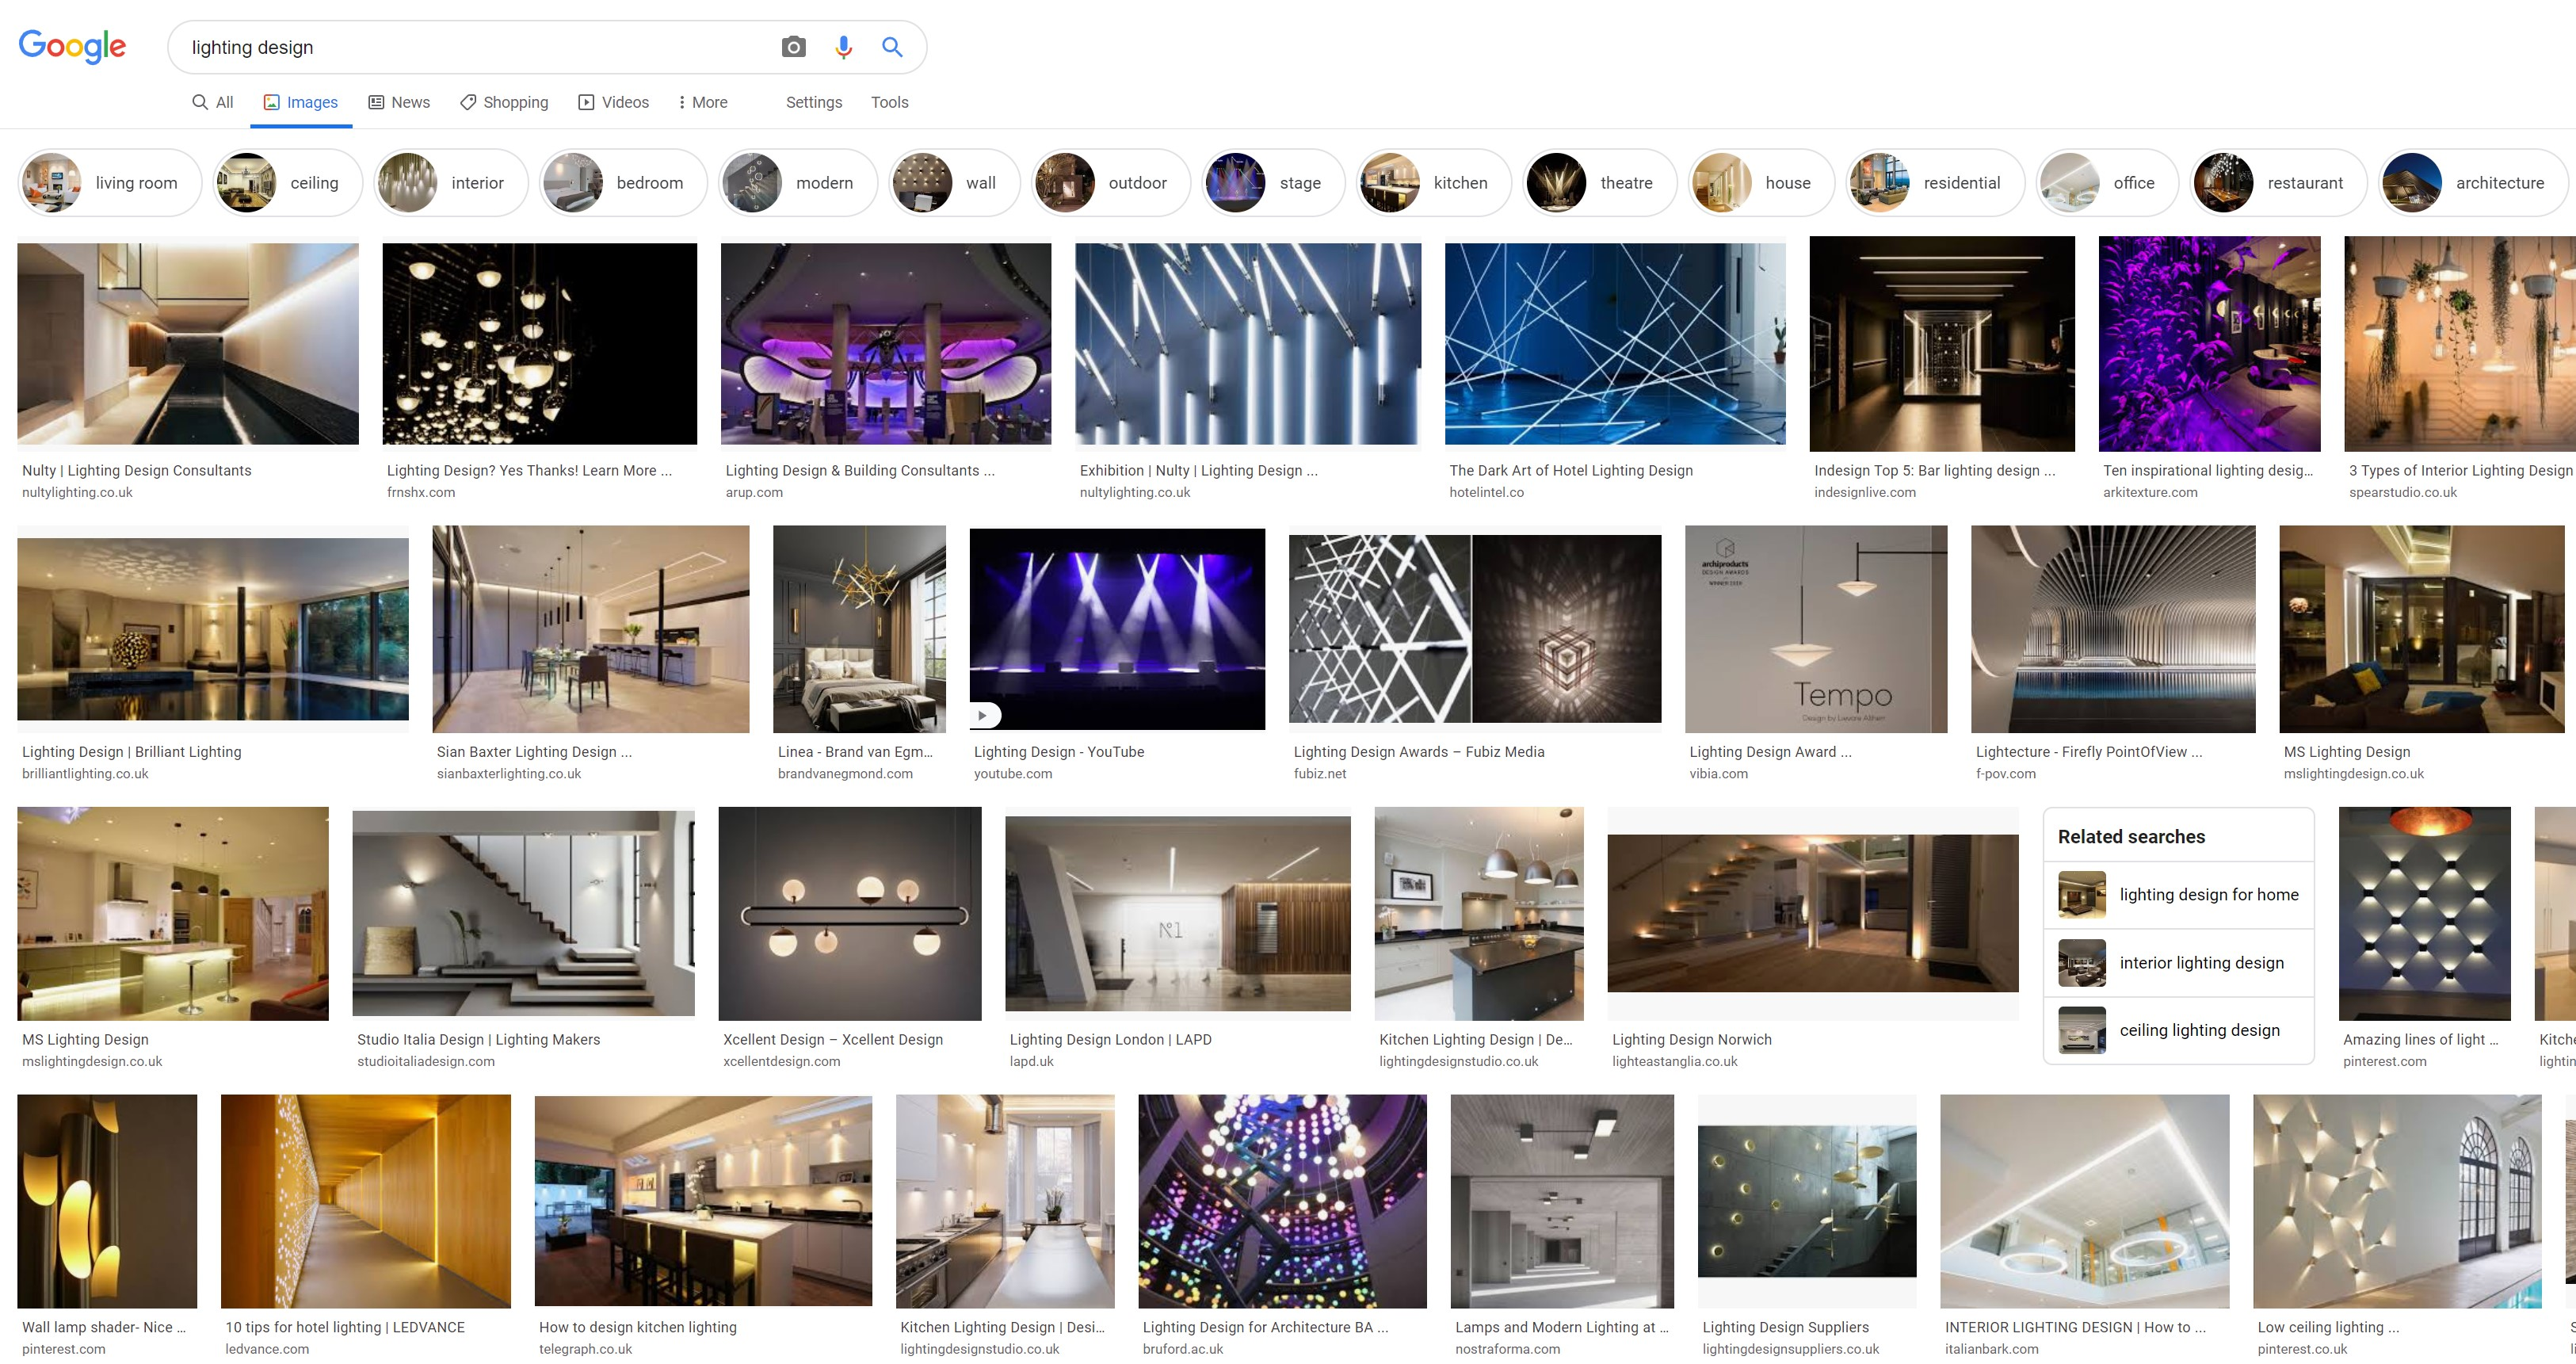 Google lighting design